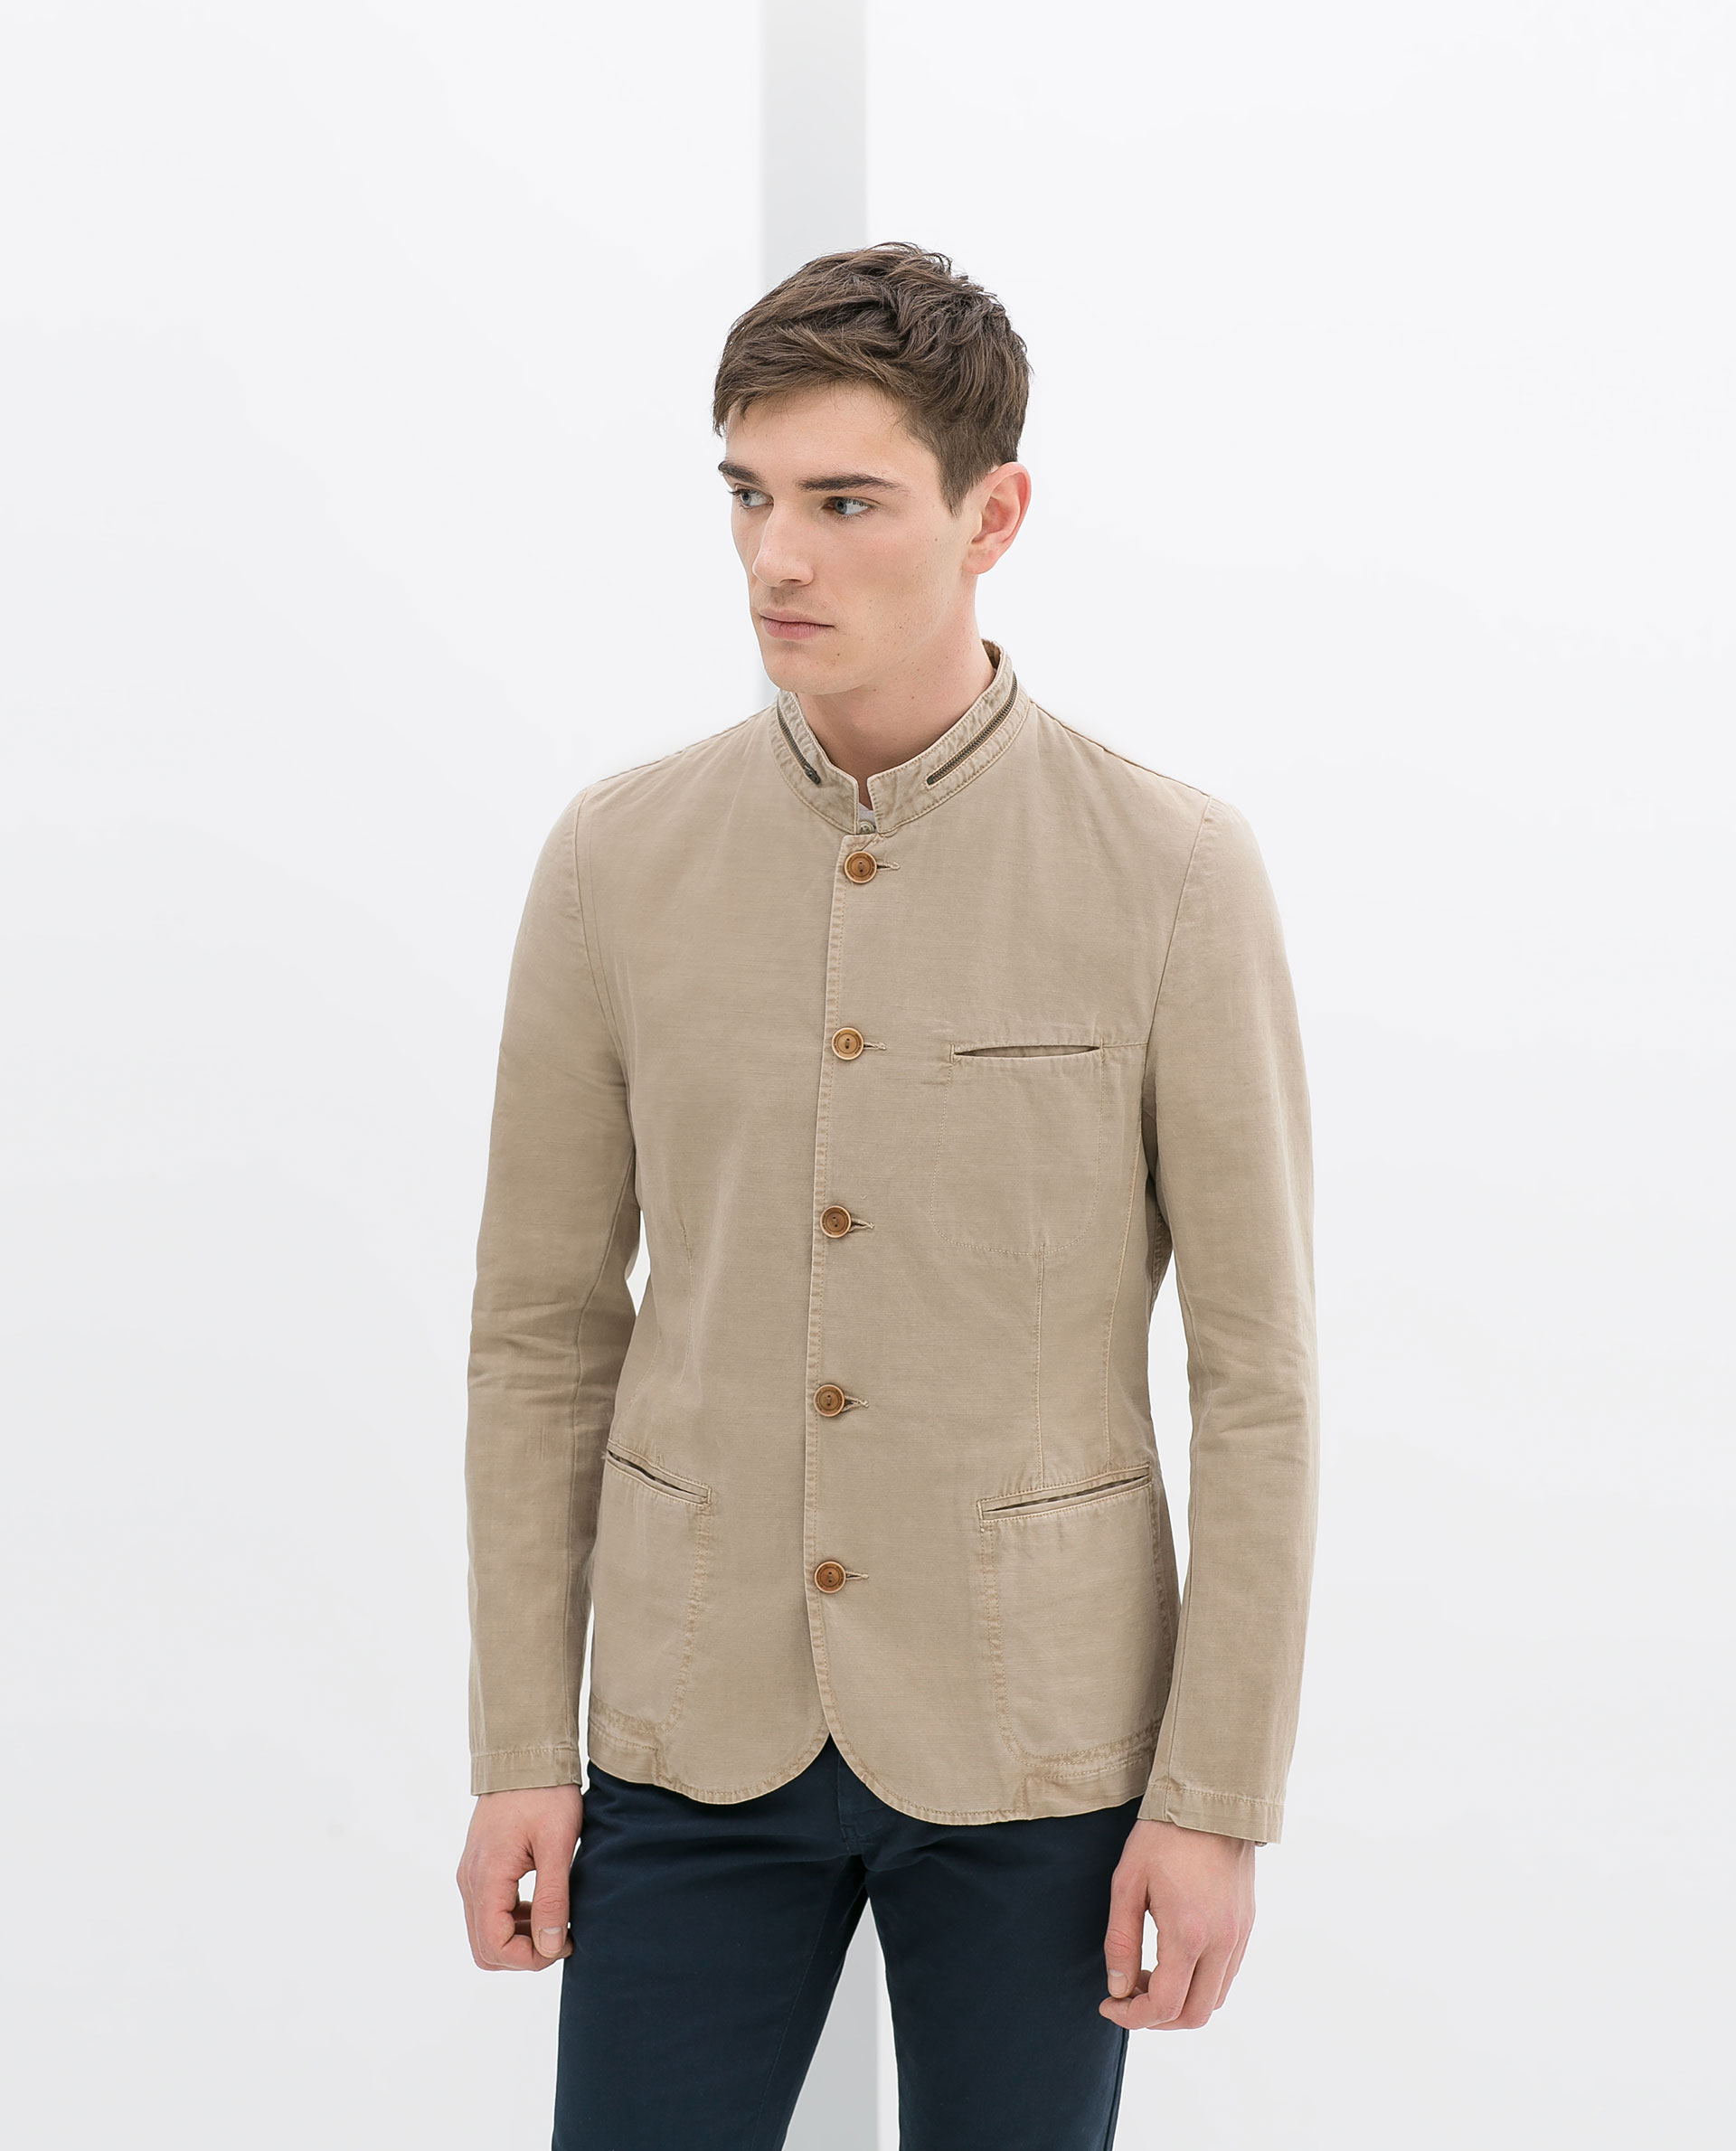 Zara Cotton and Linen Blazer in Natural for Men | Lyst